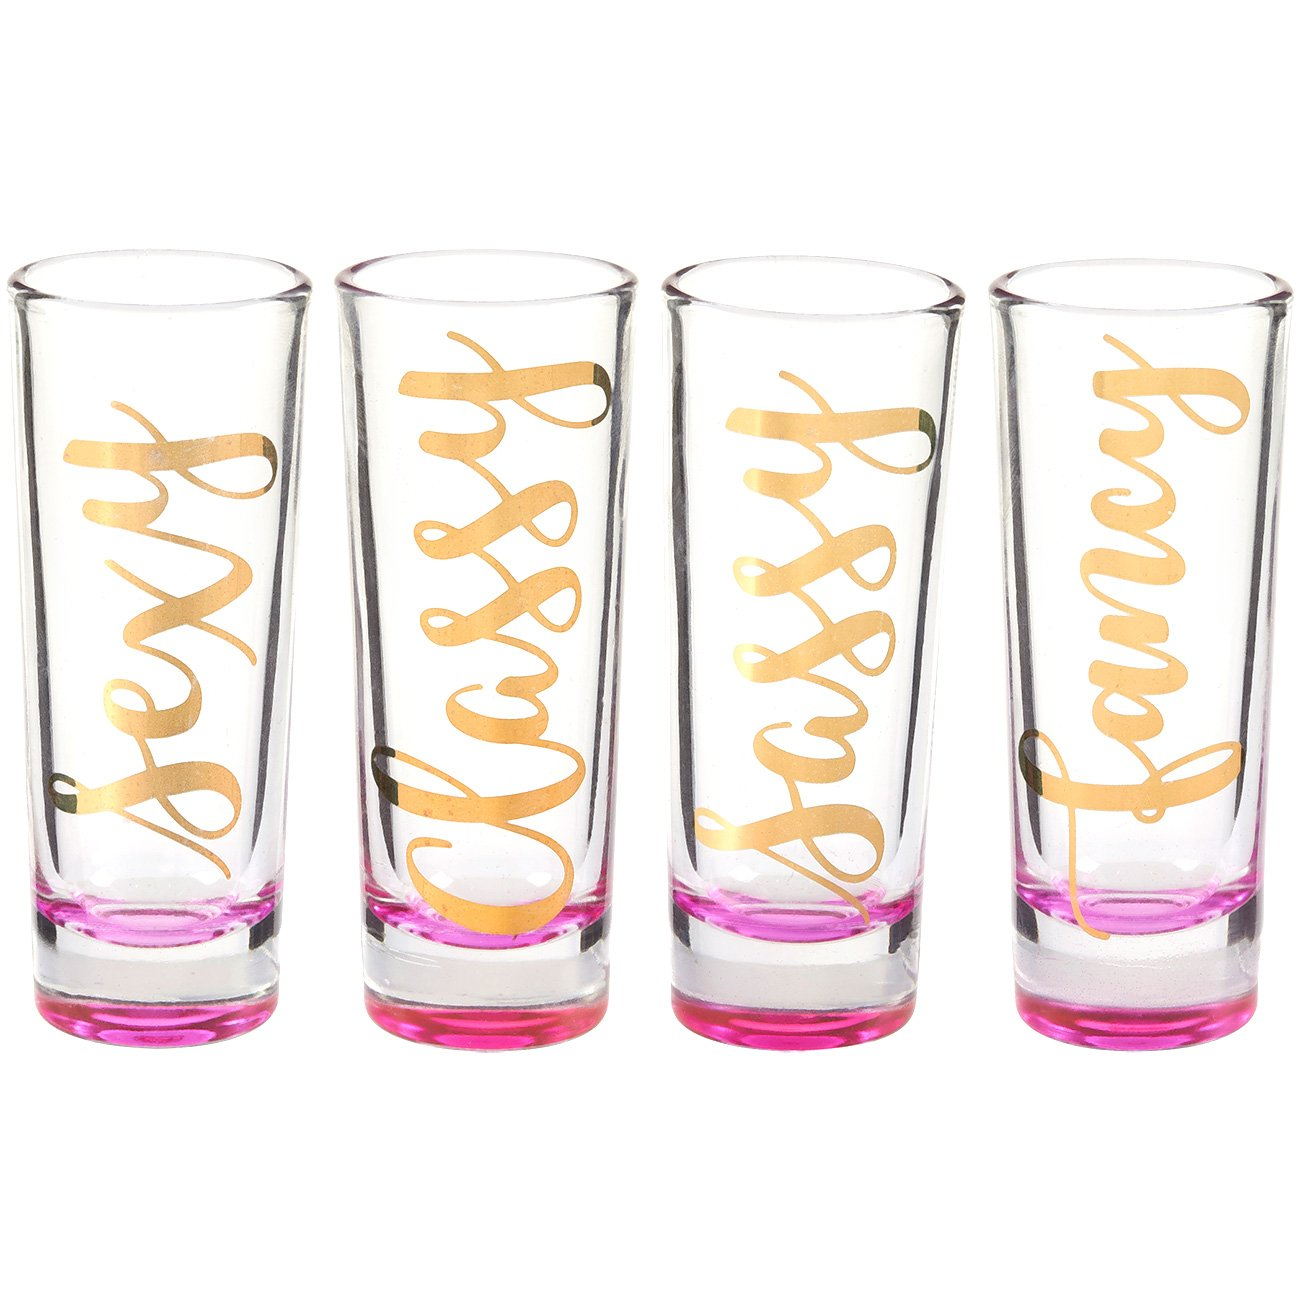 Party Favors Shot Glassess - Shot Glasses Gift Set, Fancy, Sexy, Sassy, Classy Gold Foil Prints and Pink Bottom for Bachelorette, Bridal Showers, Girls Night Out- Set of 4, 2 oz Each